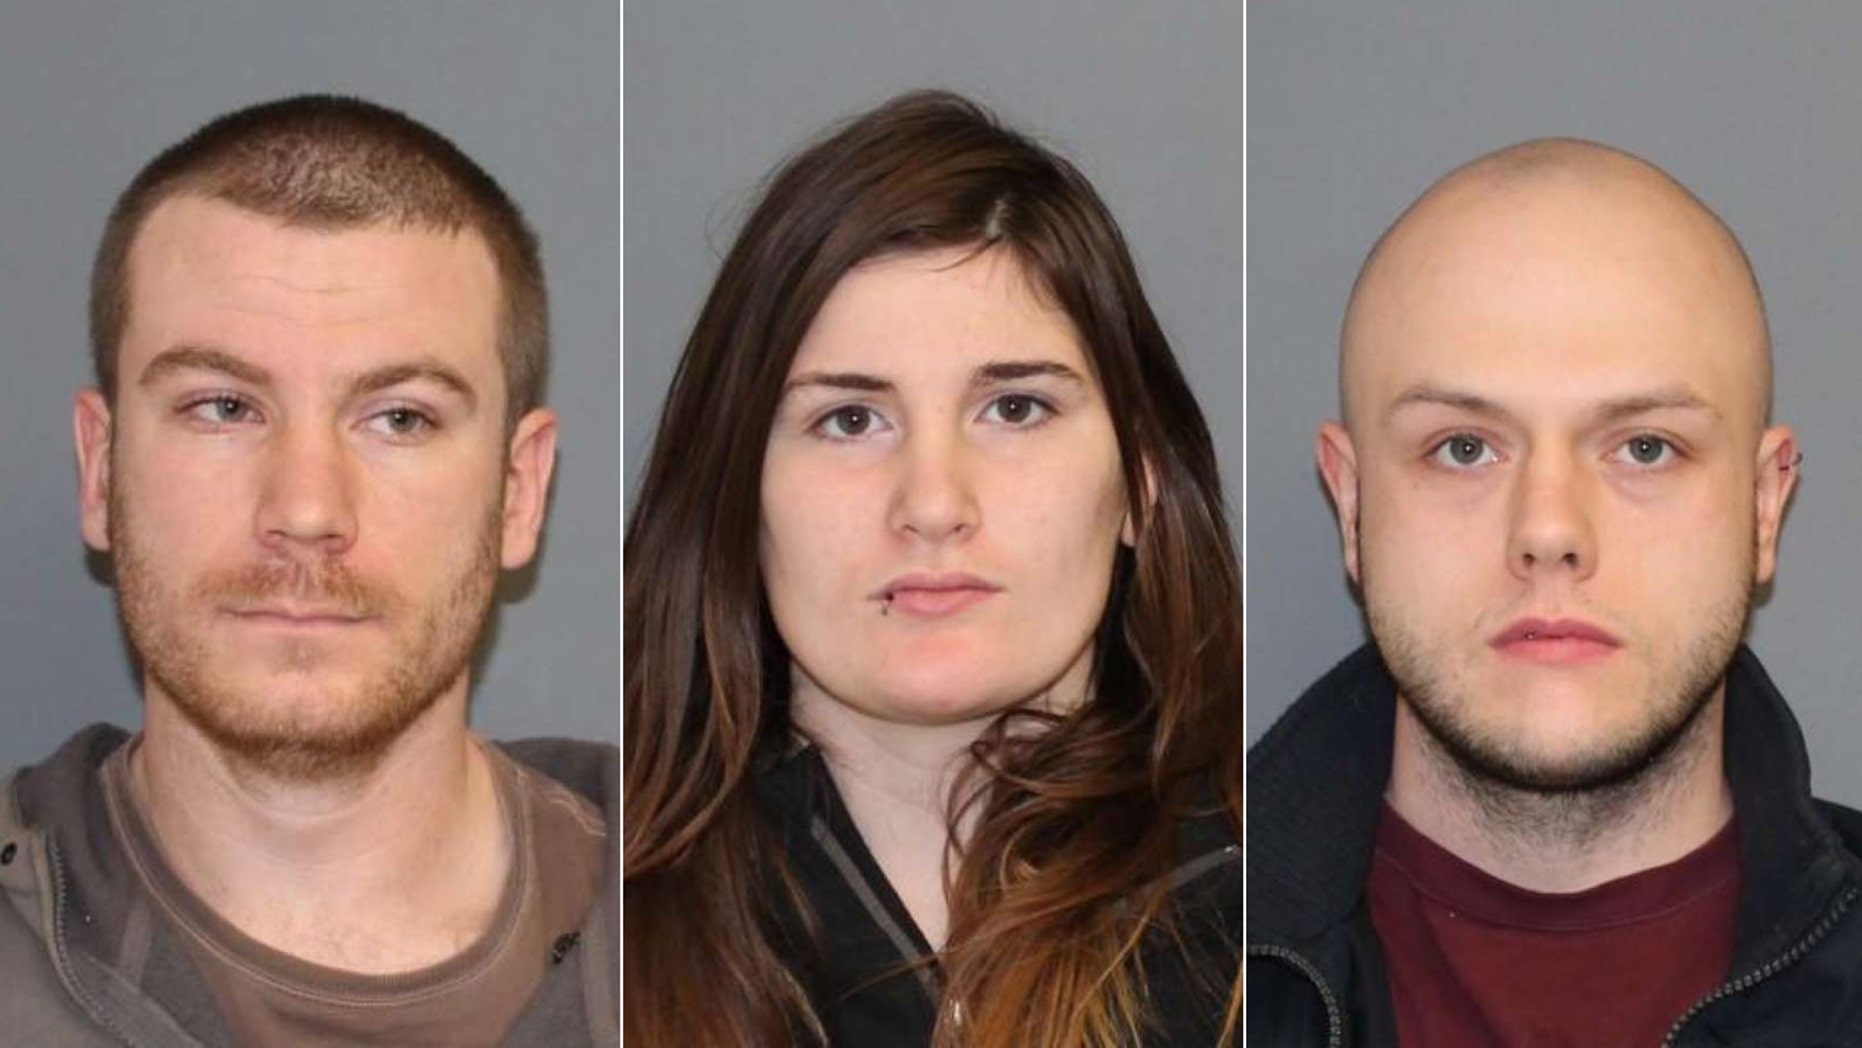 Gregory Rottjer, Jennifer Hannum and  Matthew Dorso face charges for throwing a person off a bridge in Connecticut.